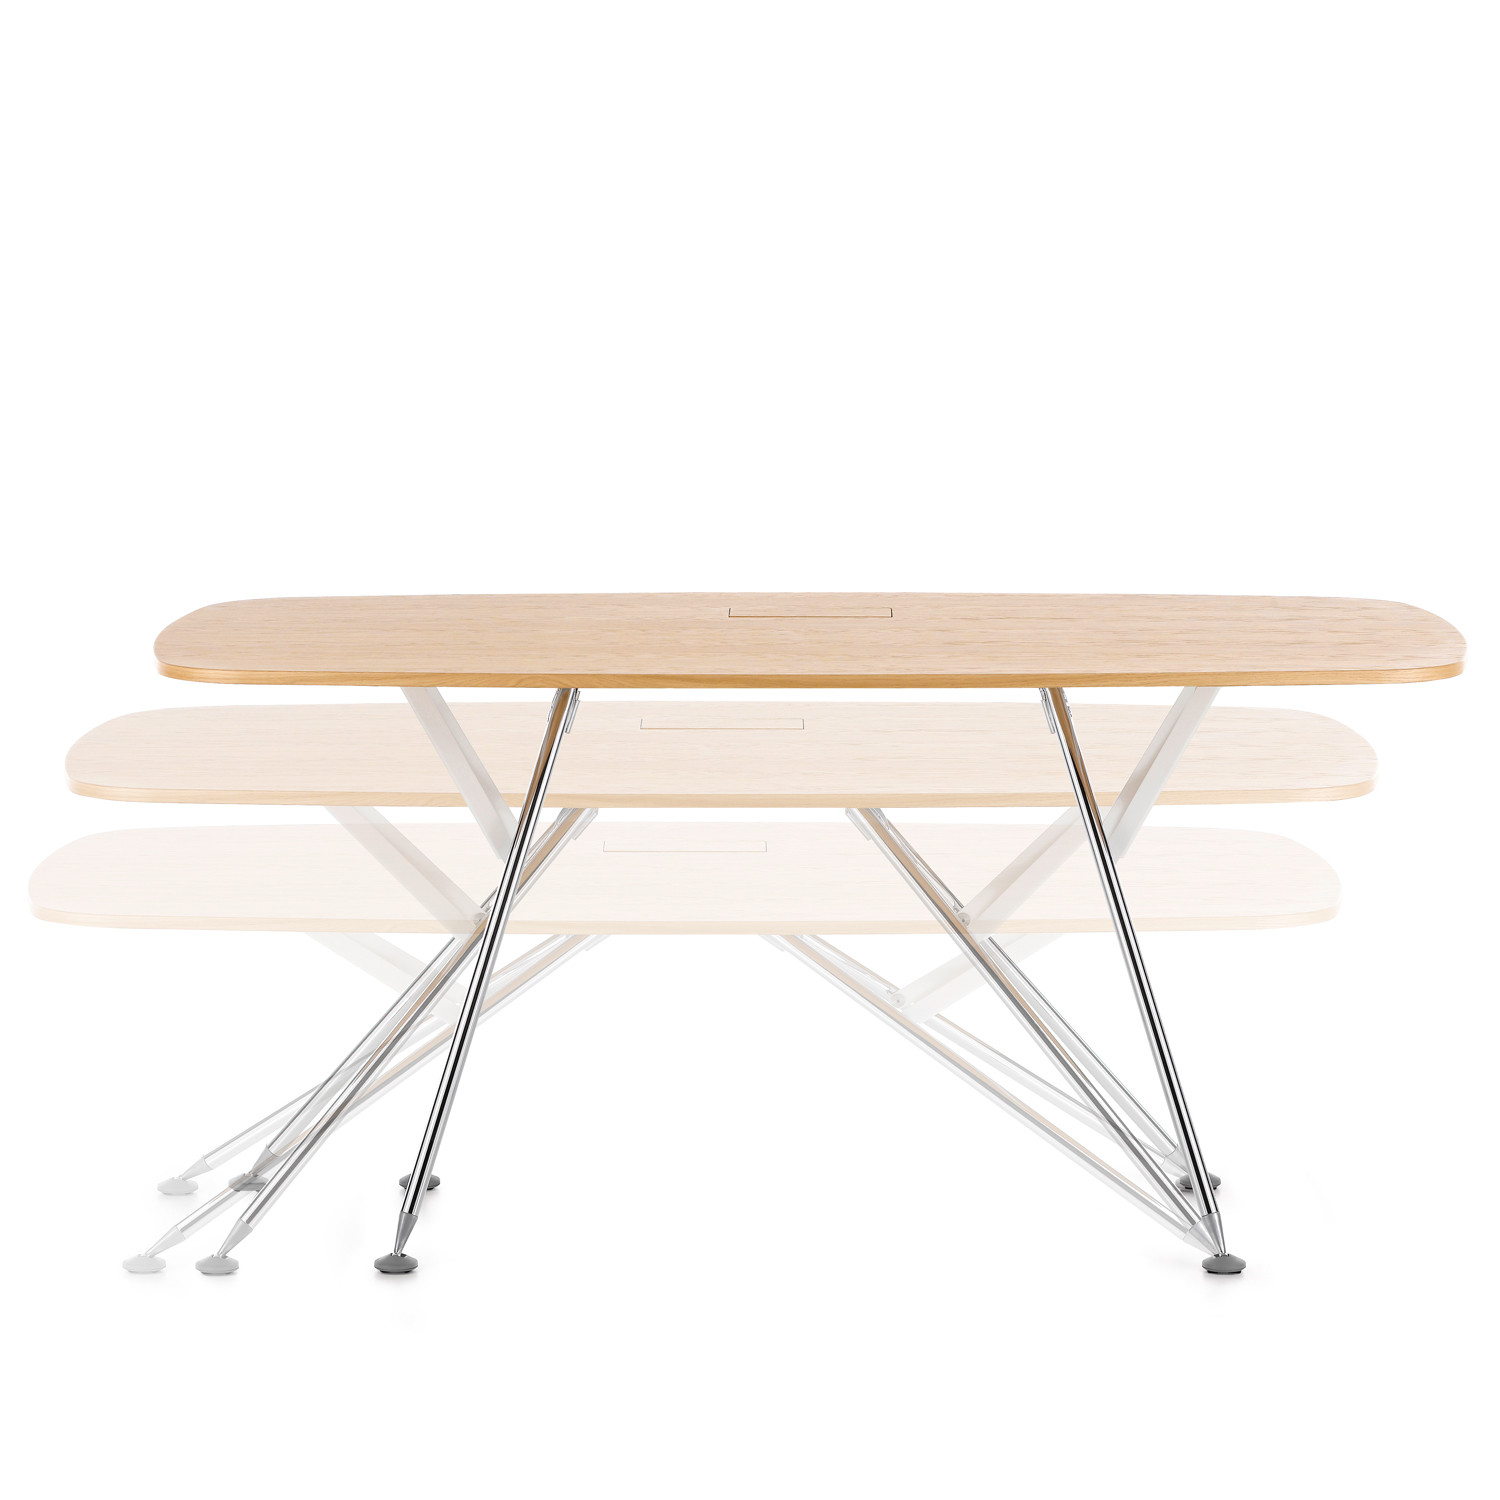 Vitra ArchiMeda Table